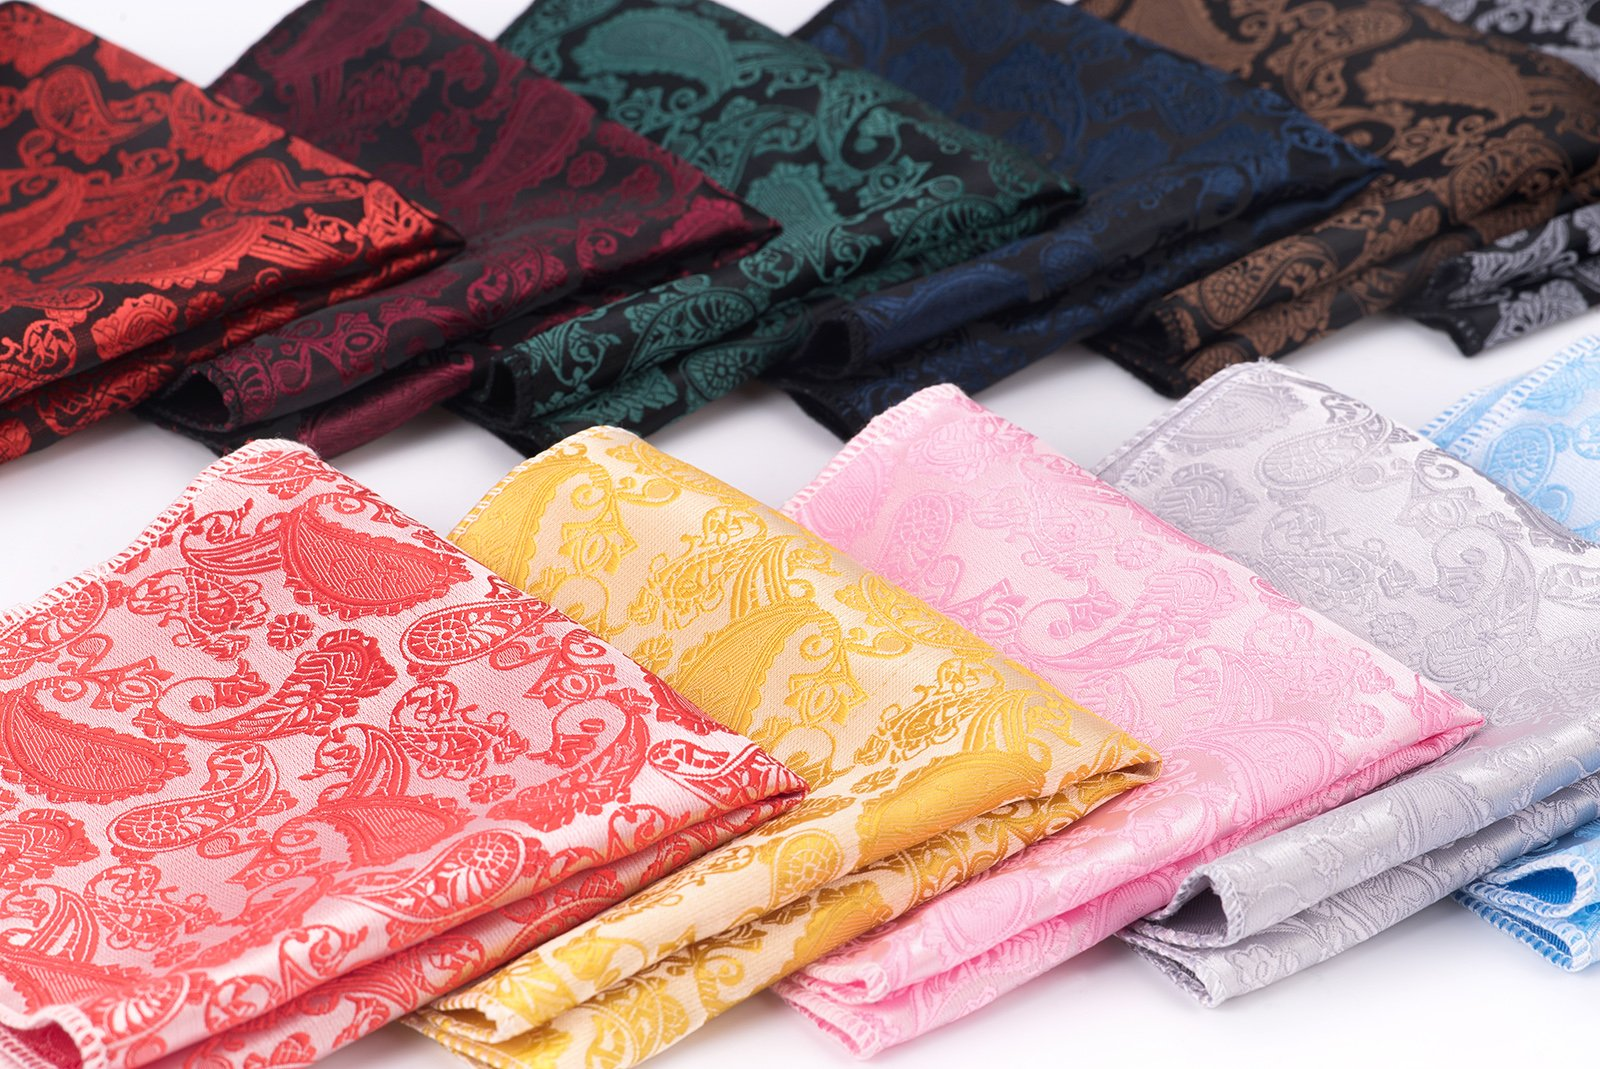 12 PCS Mens Square Handkerchief Printing patterns Pocket for Wedding Party(Pack of 12) by DanDiao (Image #6)